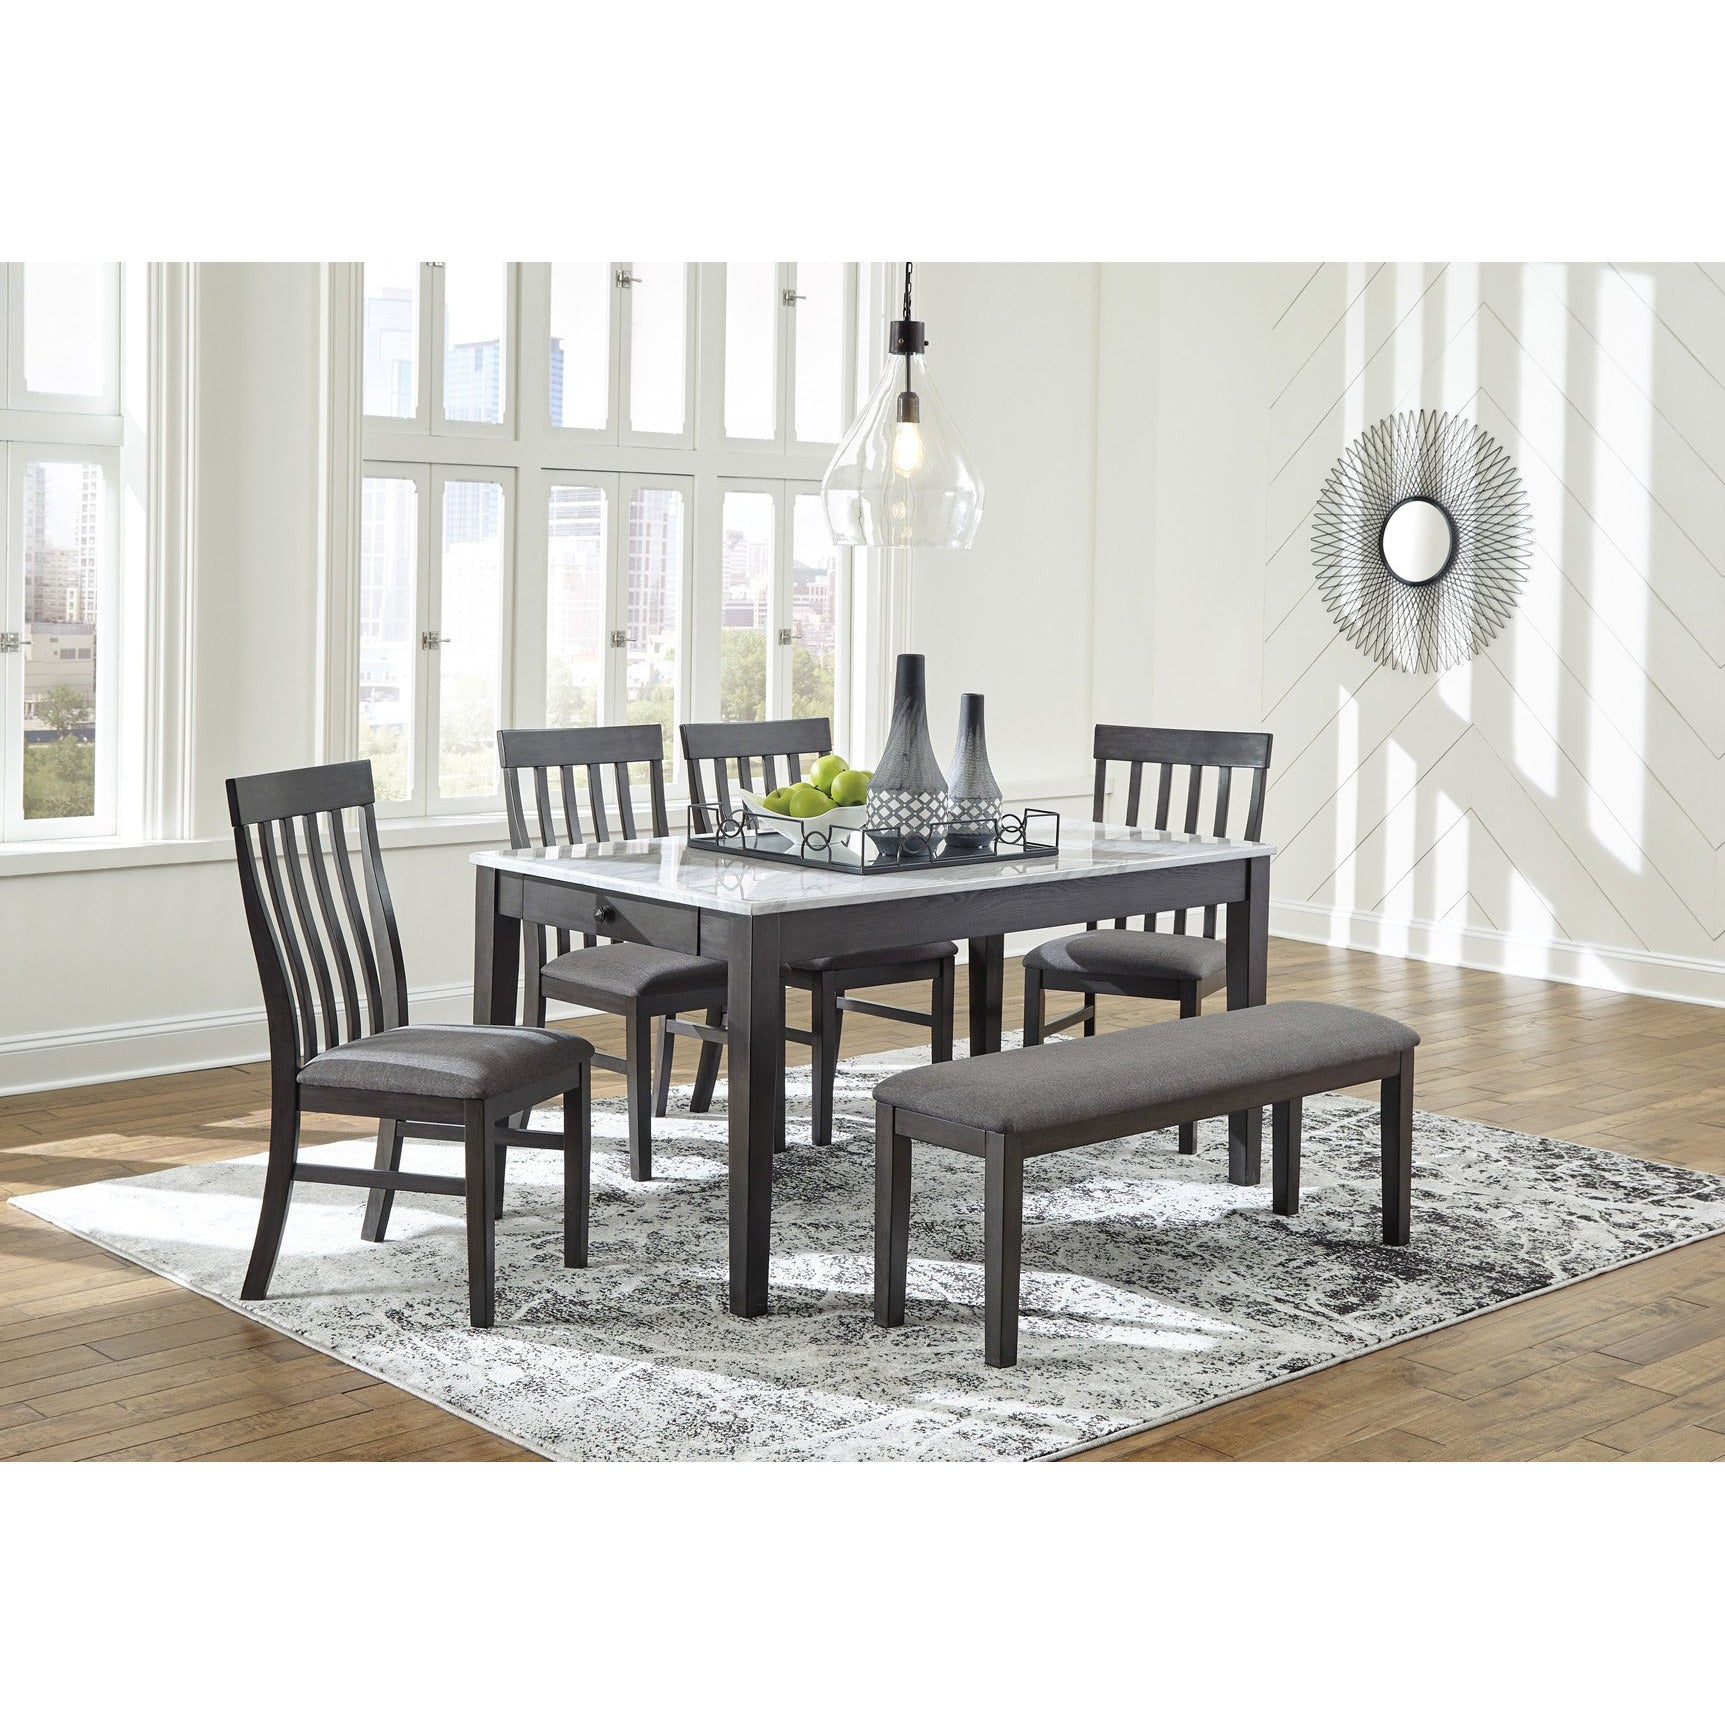 Luvoni Dining Set with Bench